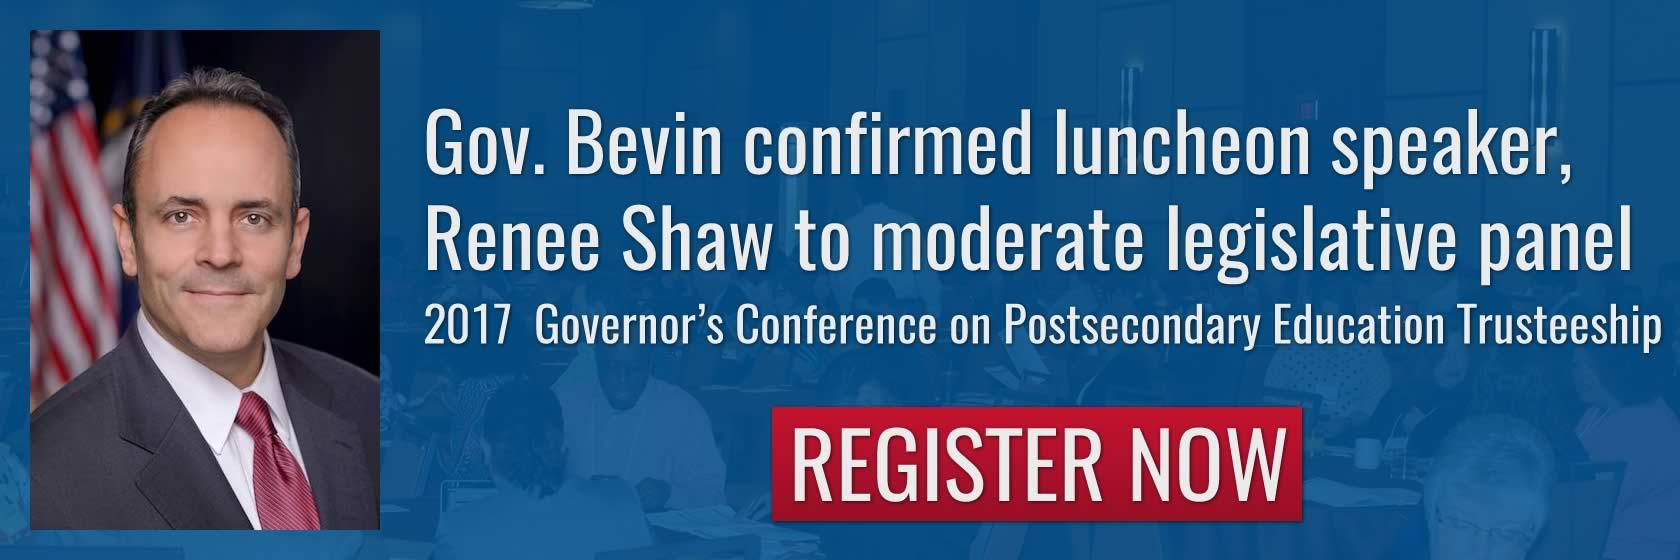 Register now for the Governor's Conference on Postsecondary Education Trusteeship.